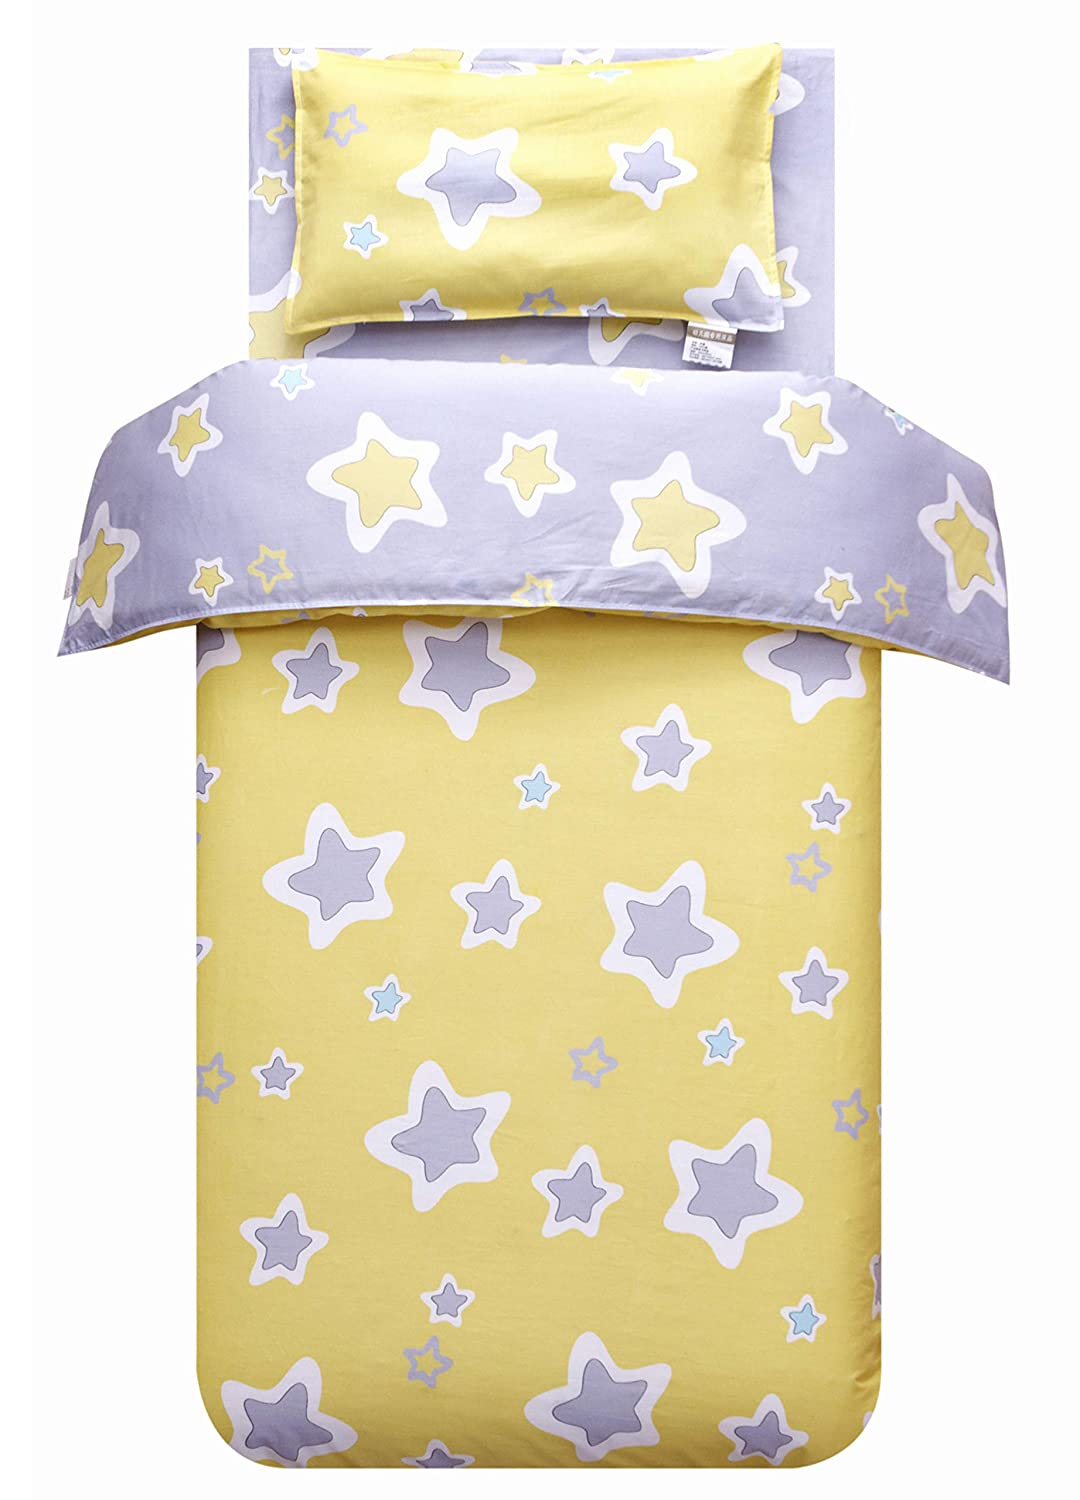 MEJU Yellow Stars 100% Cotton Duvet Cover + Pillowcase Bedding Set with Zipper Closure for Baby Toddler Boys Girls Crib Bed Decoration Gift (5)